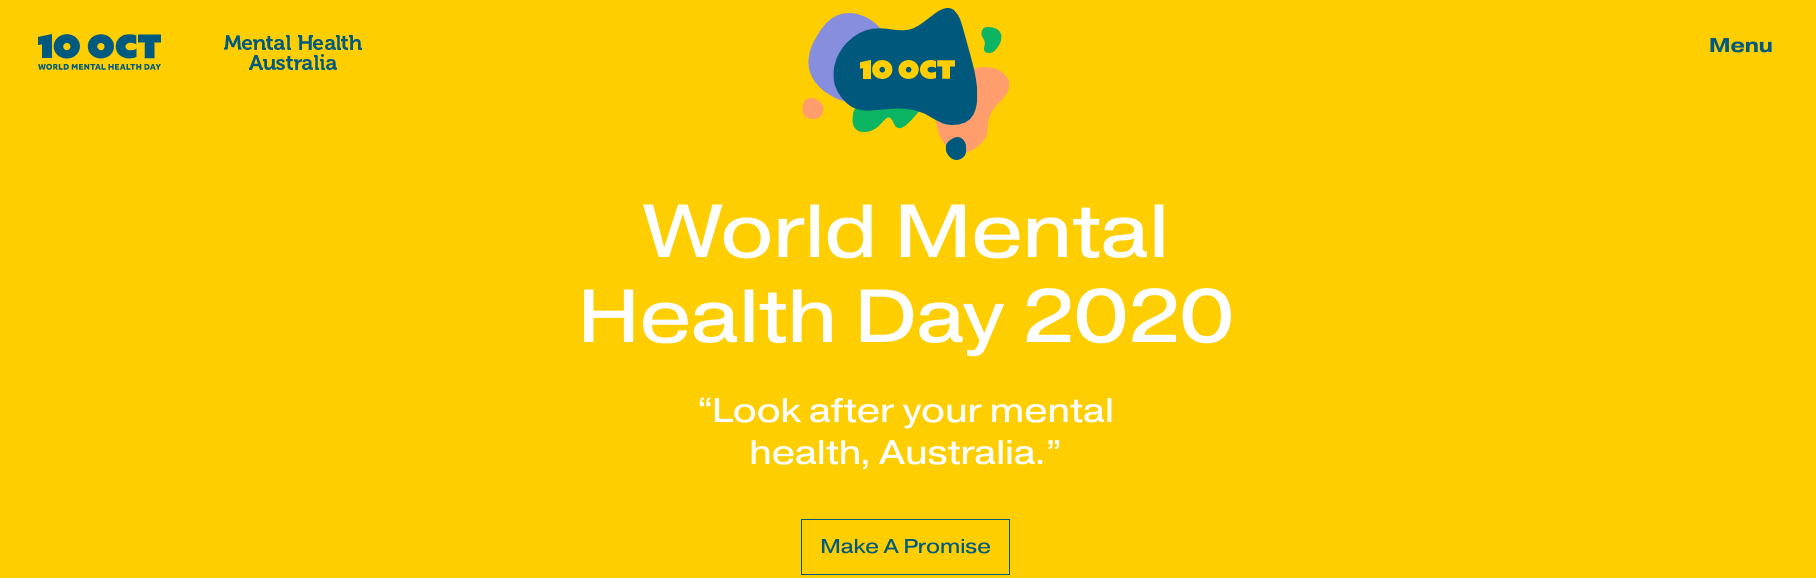 Mental Health Day